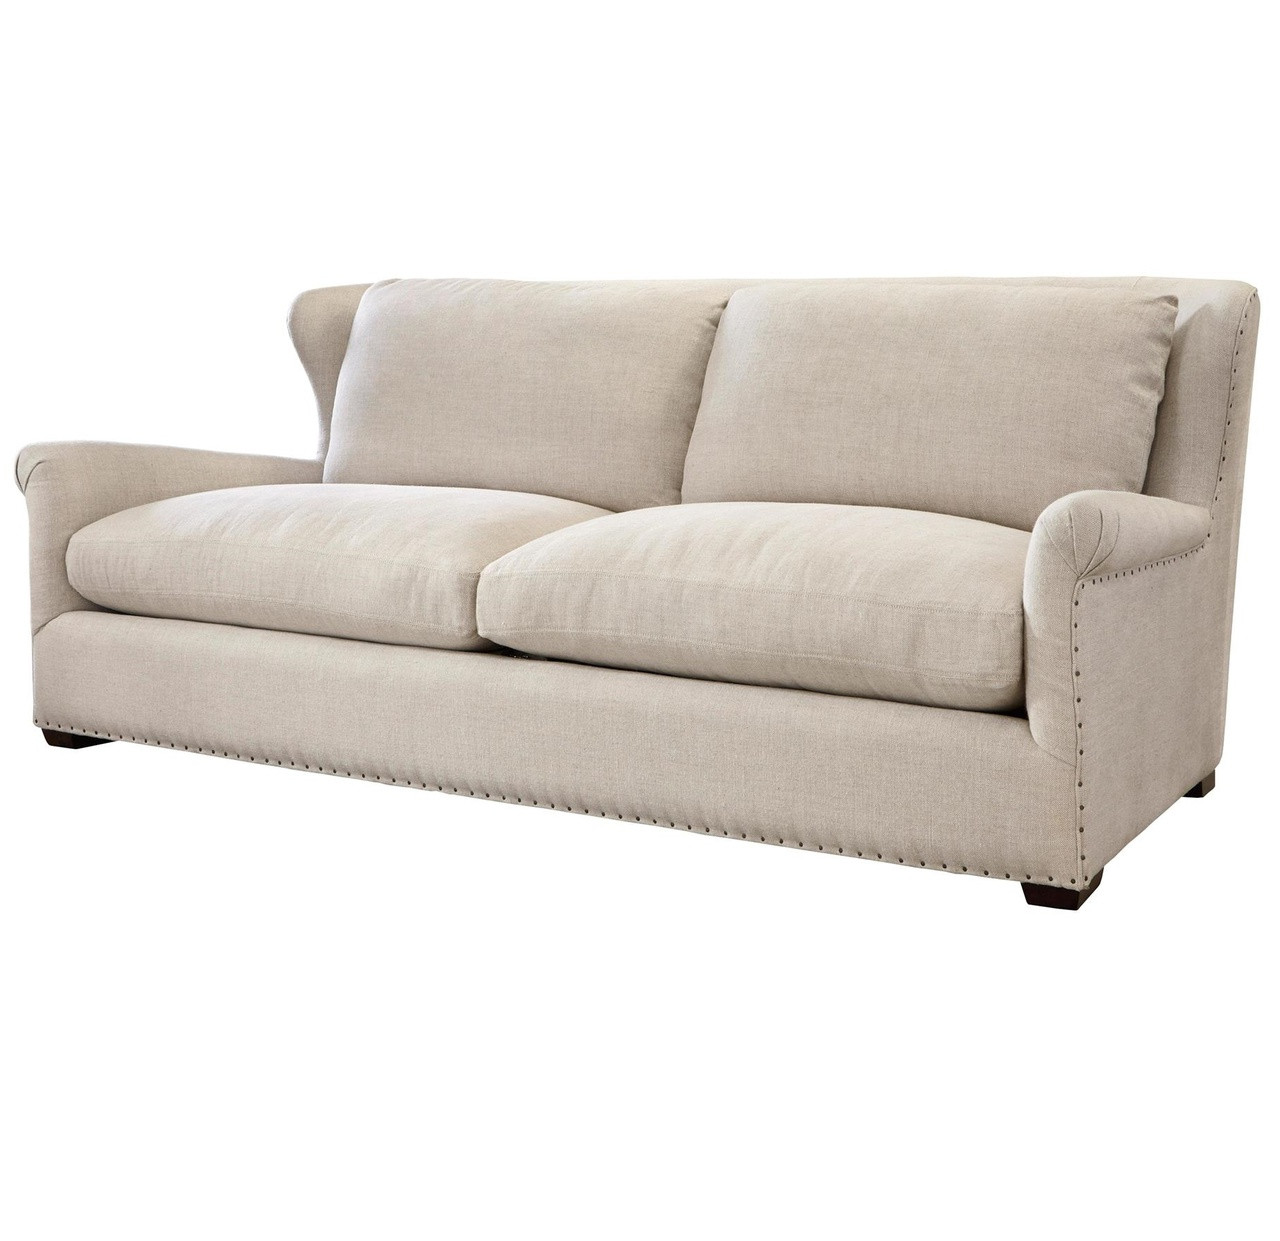 Amazing Haven Belgian Linen Upholstered Wingback Sofa